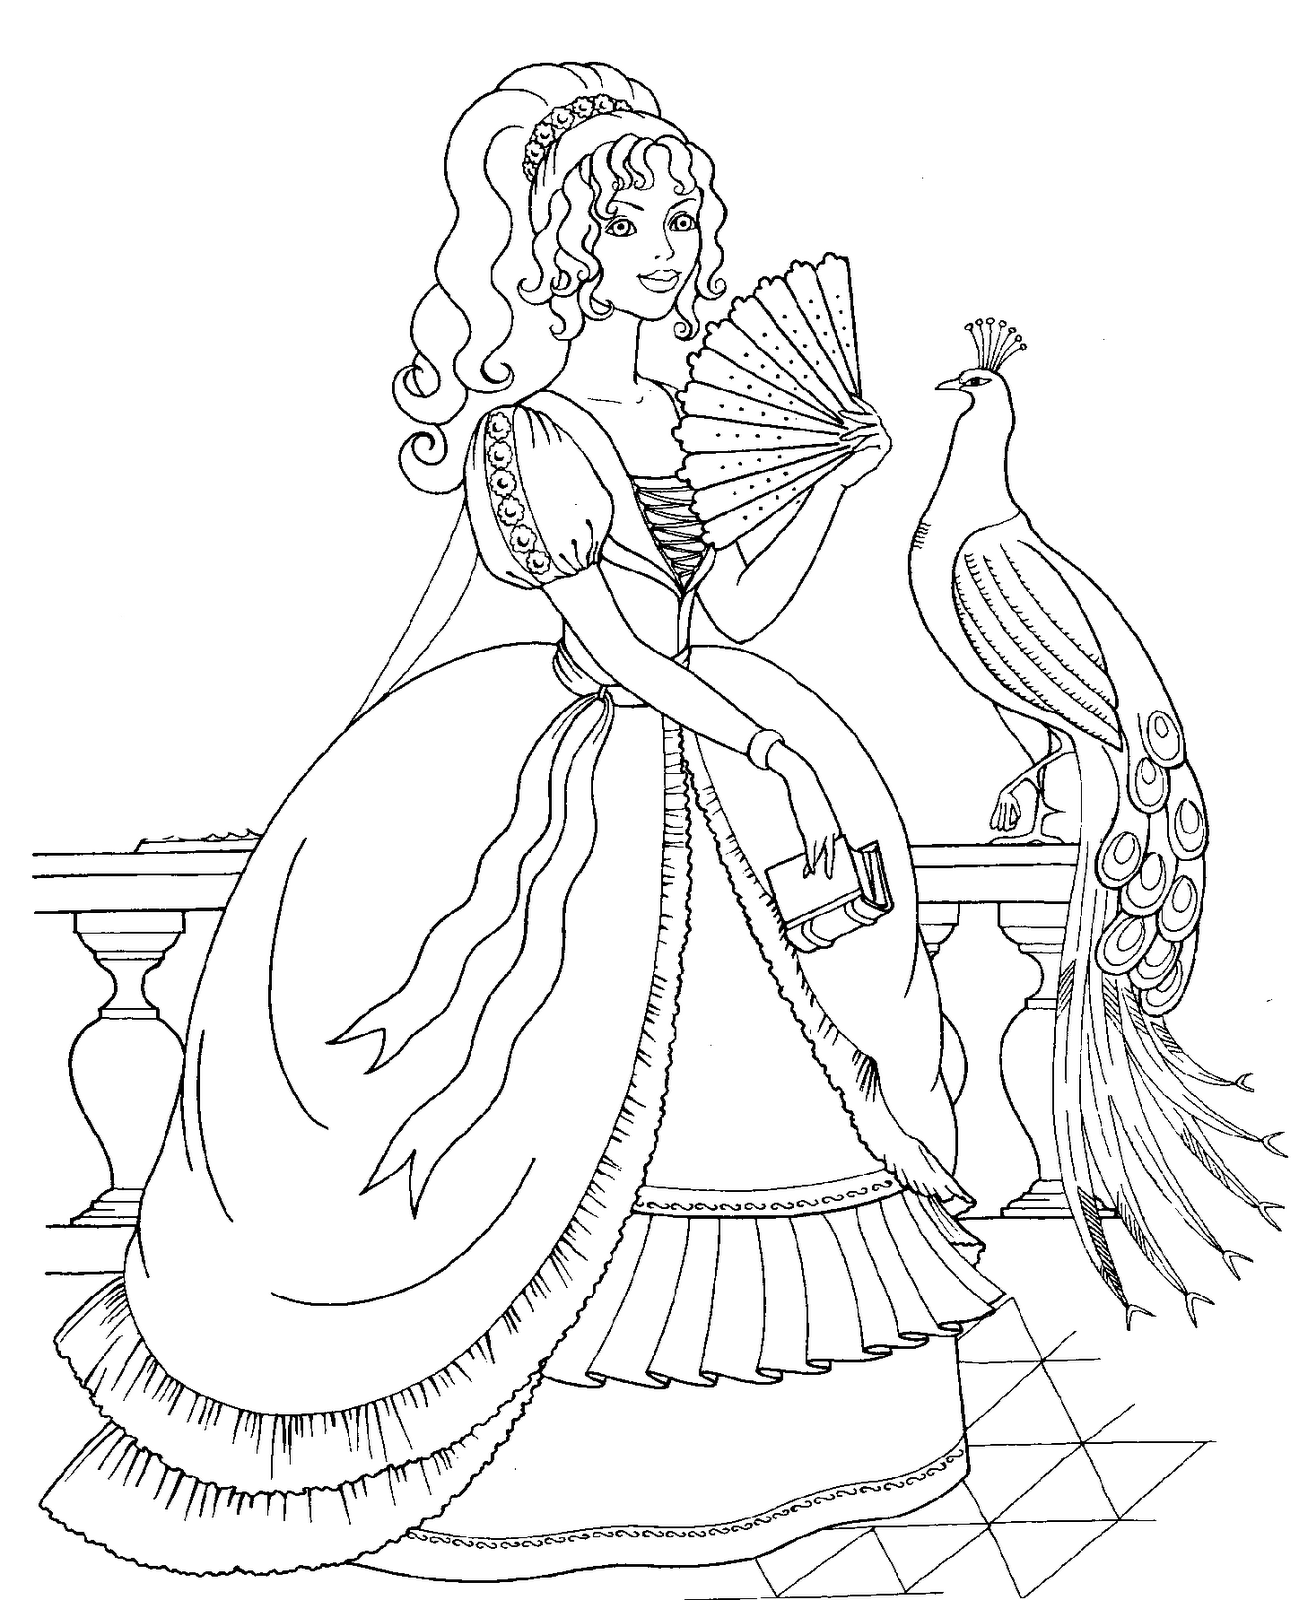 Disney Princess And Animals Coloring Pages To Kids Disney Princesses Coloring Page